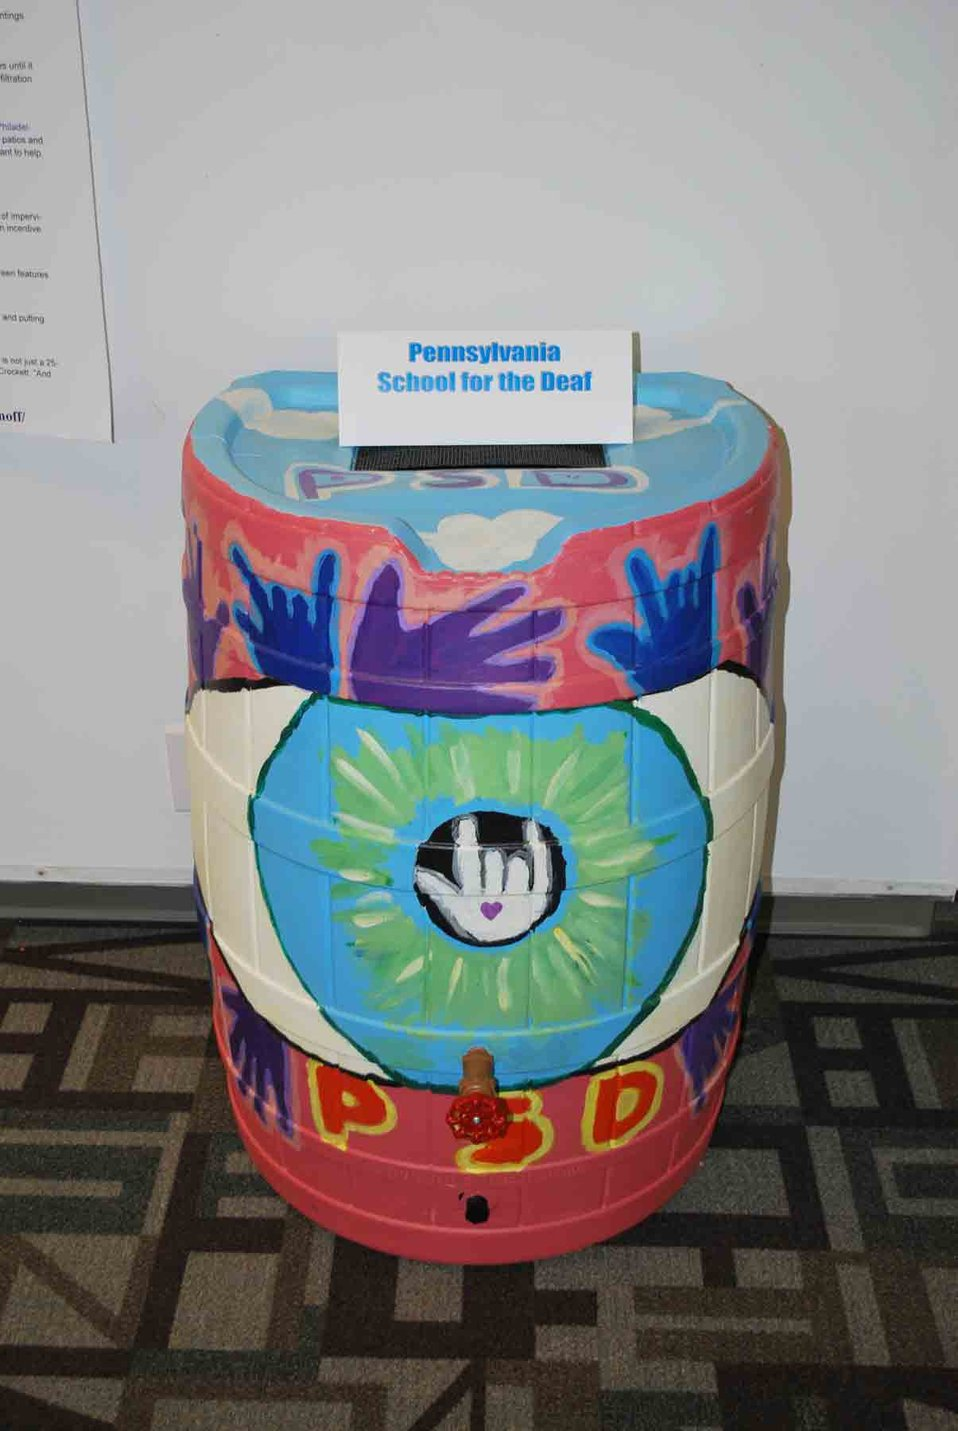 Rain Barrel Art by the Pennsylvania School for the Deaf